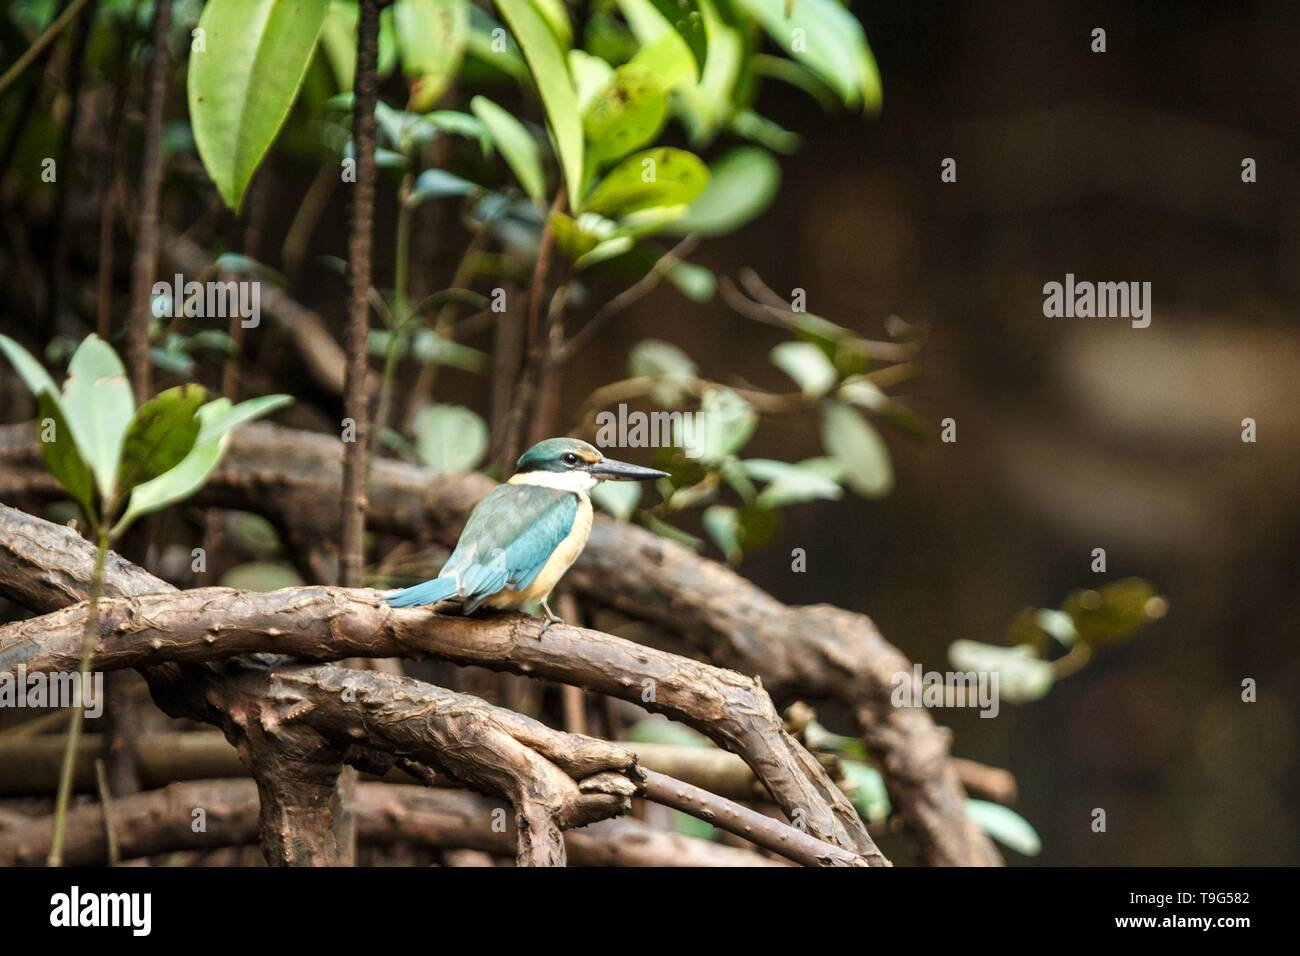 The sacred kingfisher (Todiramphus sanctus) perches on a branch in mangrove bush, family Alcedinidae, endemic species to Indonesia, Exotic birding in  - Stock Image